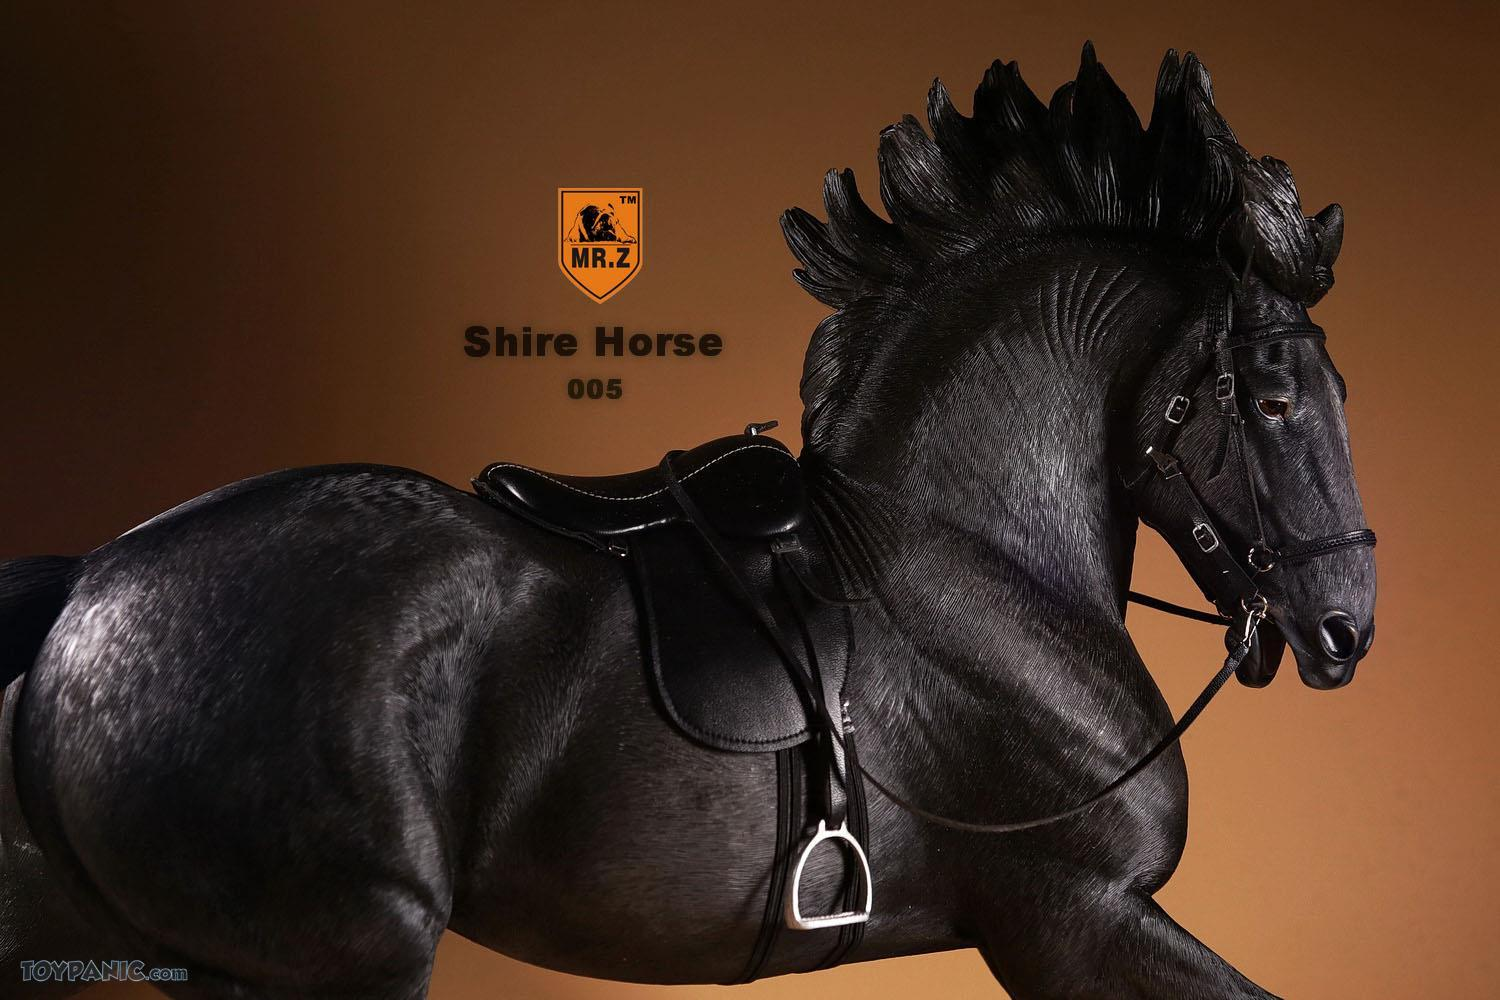 16 Leather and Metal Harness Only for British Shire